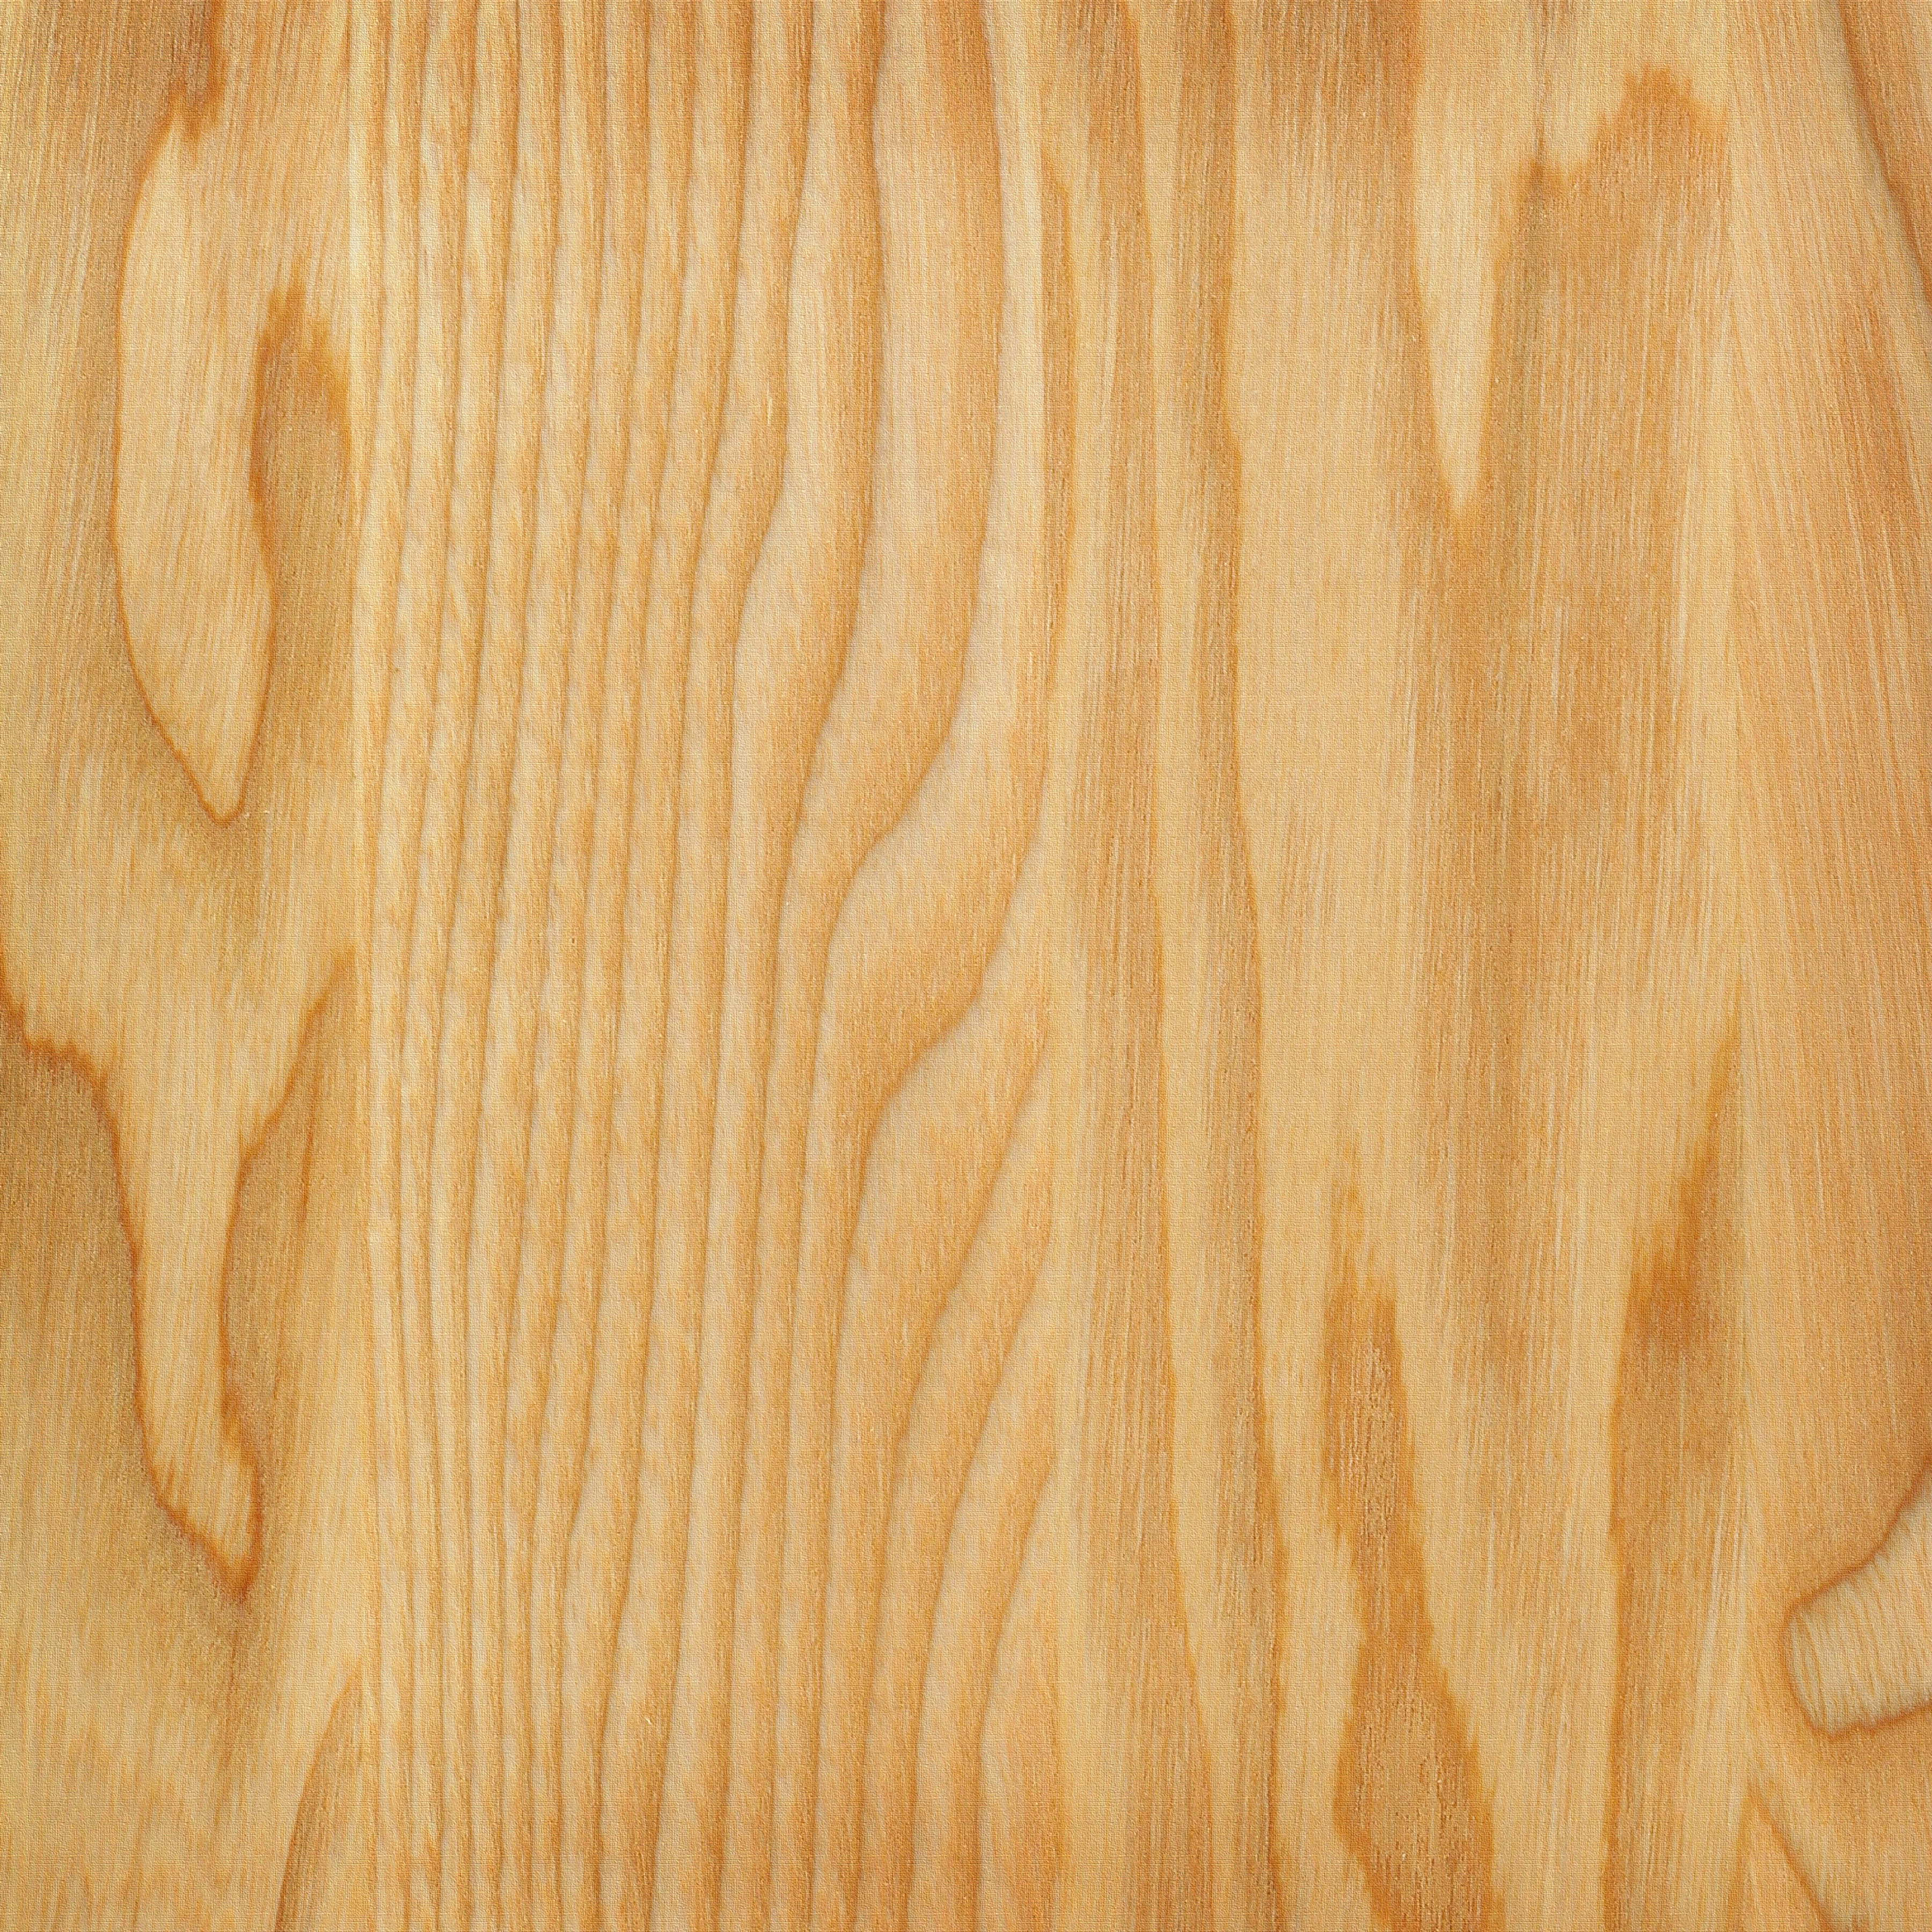 brilliant wood texture textures architecture for design inspiration